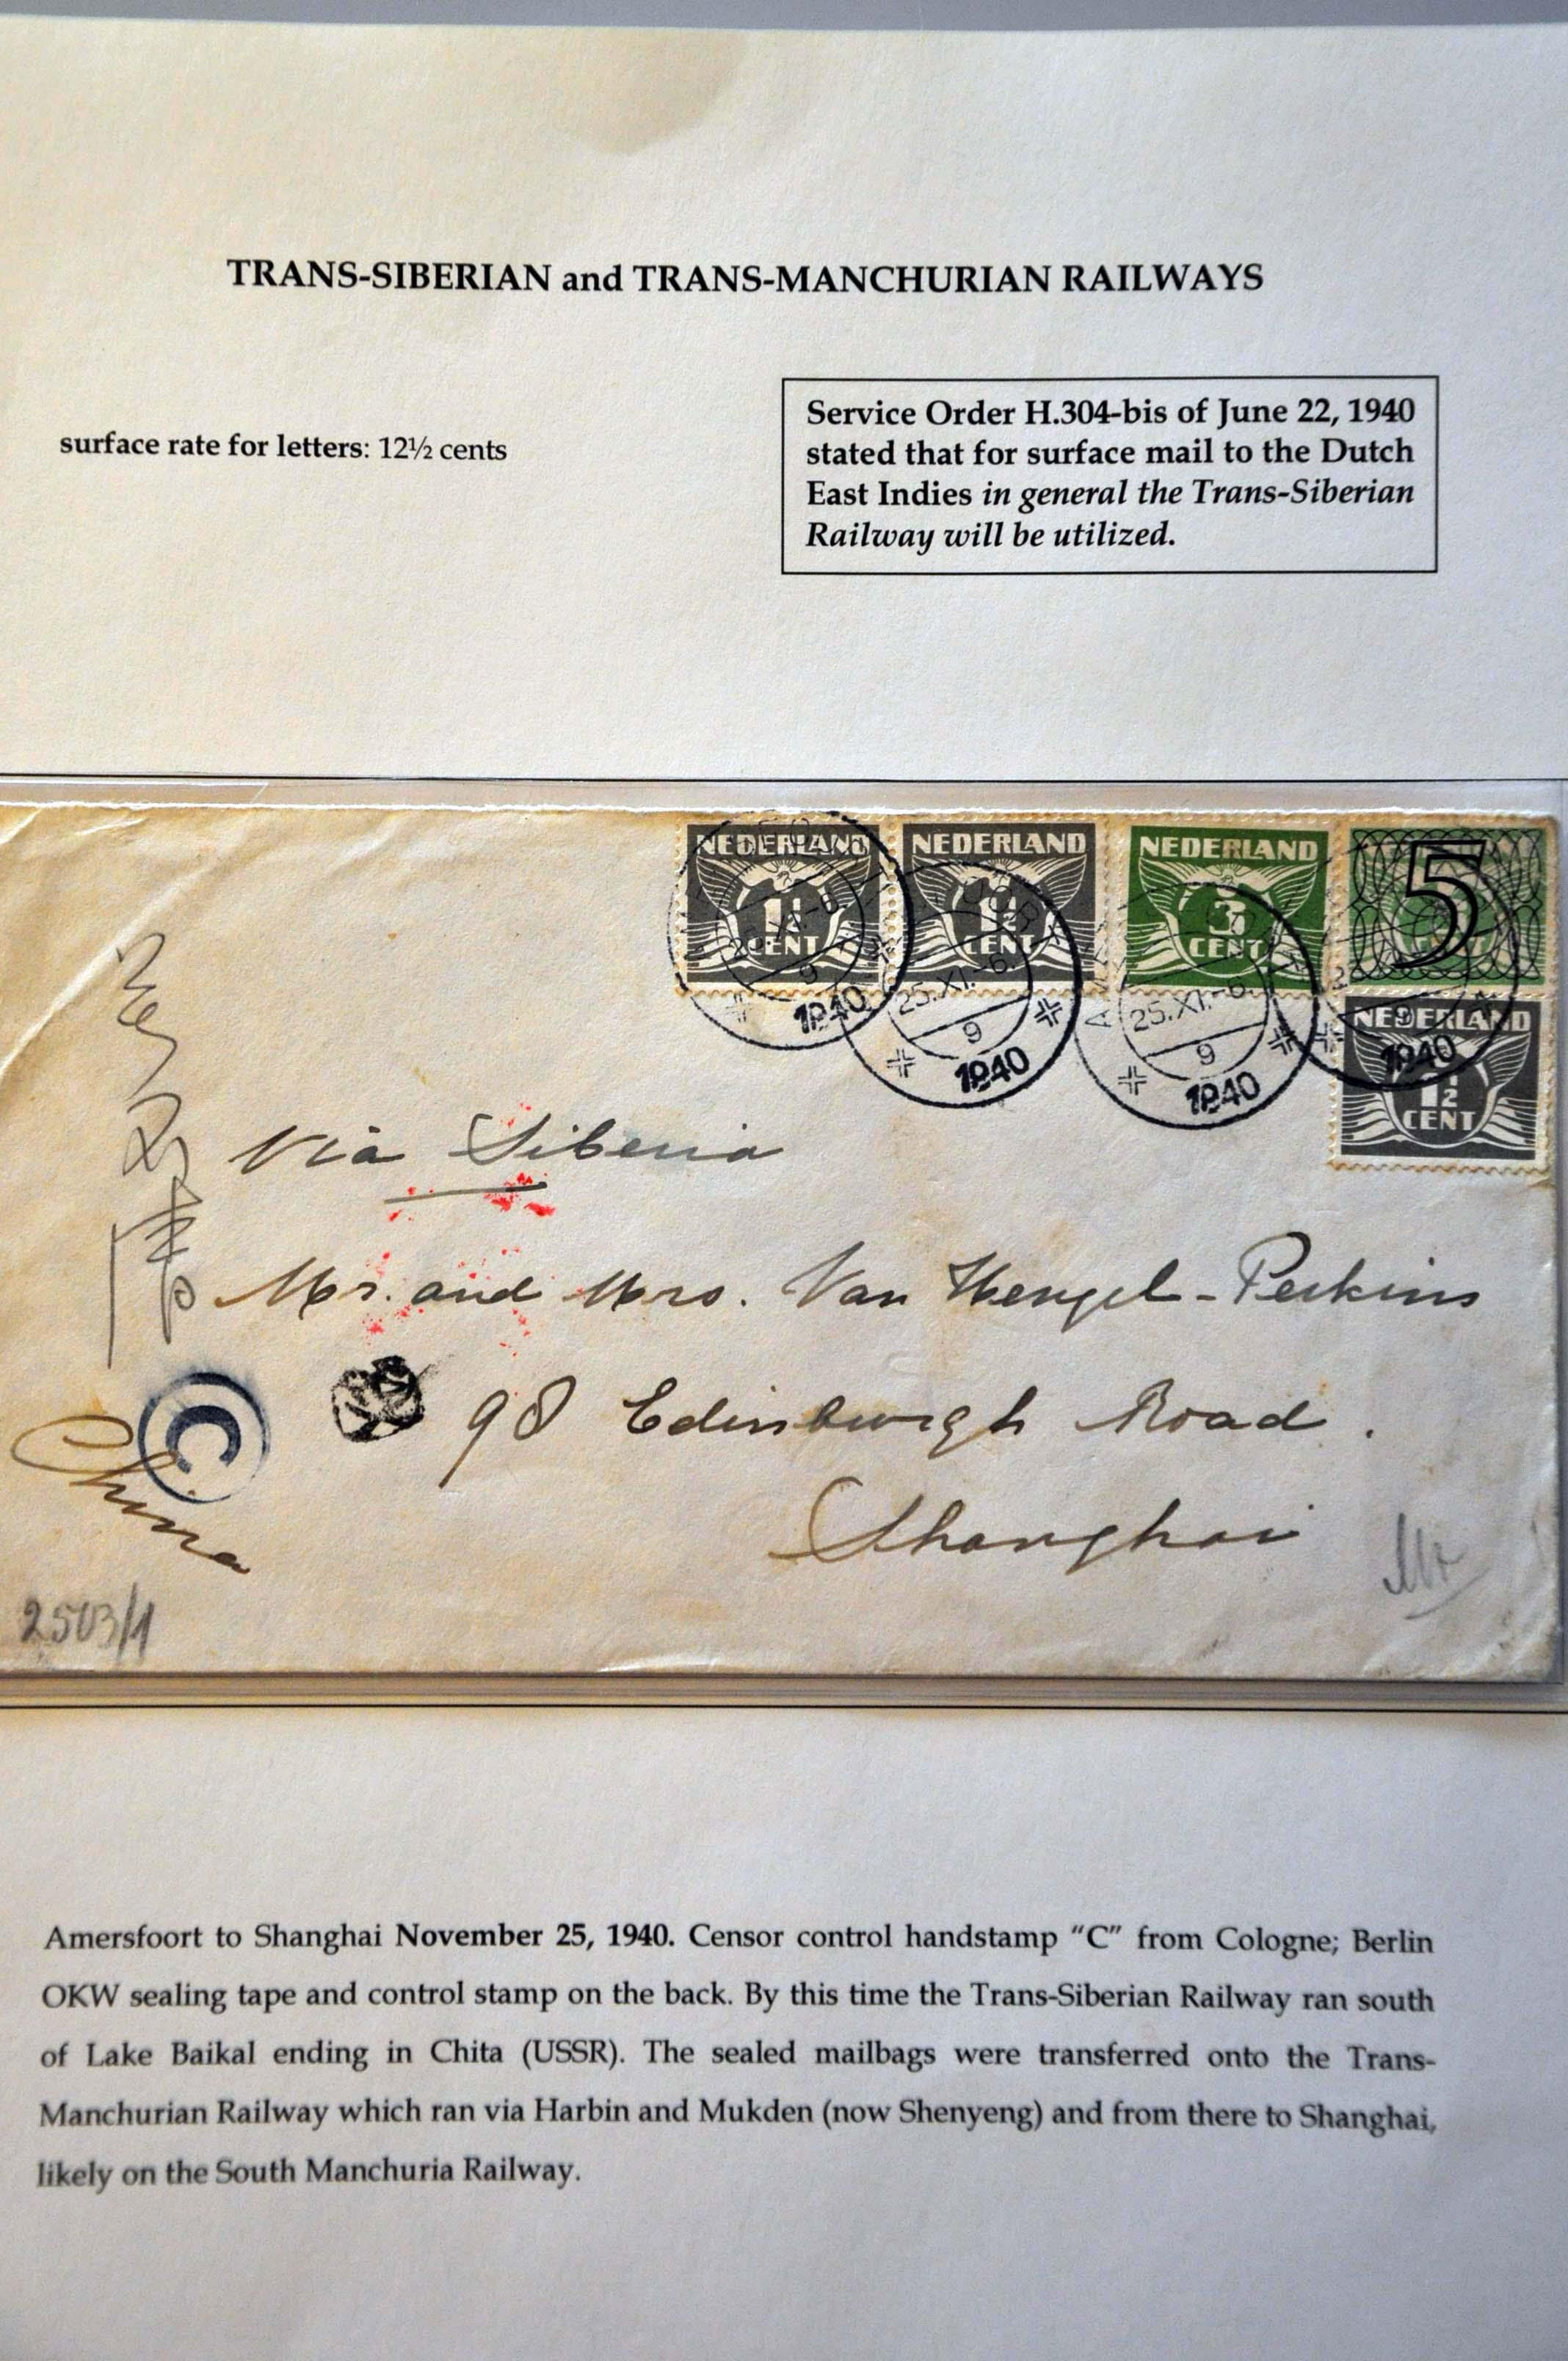 Lot 2817 - Netherlands and former colonies Netherlands -  Corinphila Veilingen Auction 244 -Netherlands and former colonies, WW2 Postal History, Bosnia, German and British colonies, Egypt. - Day 3